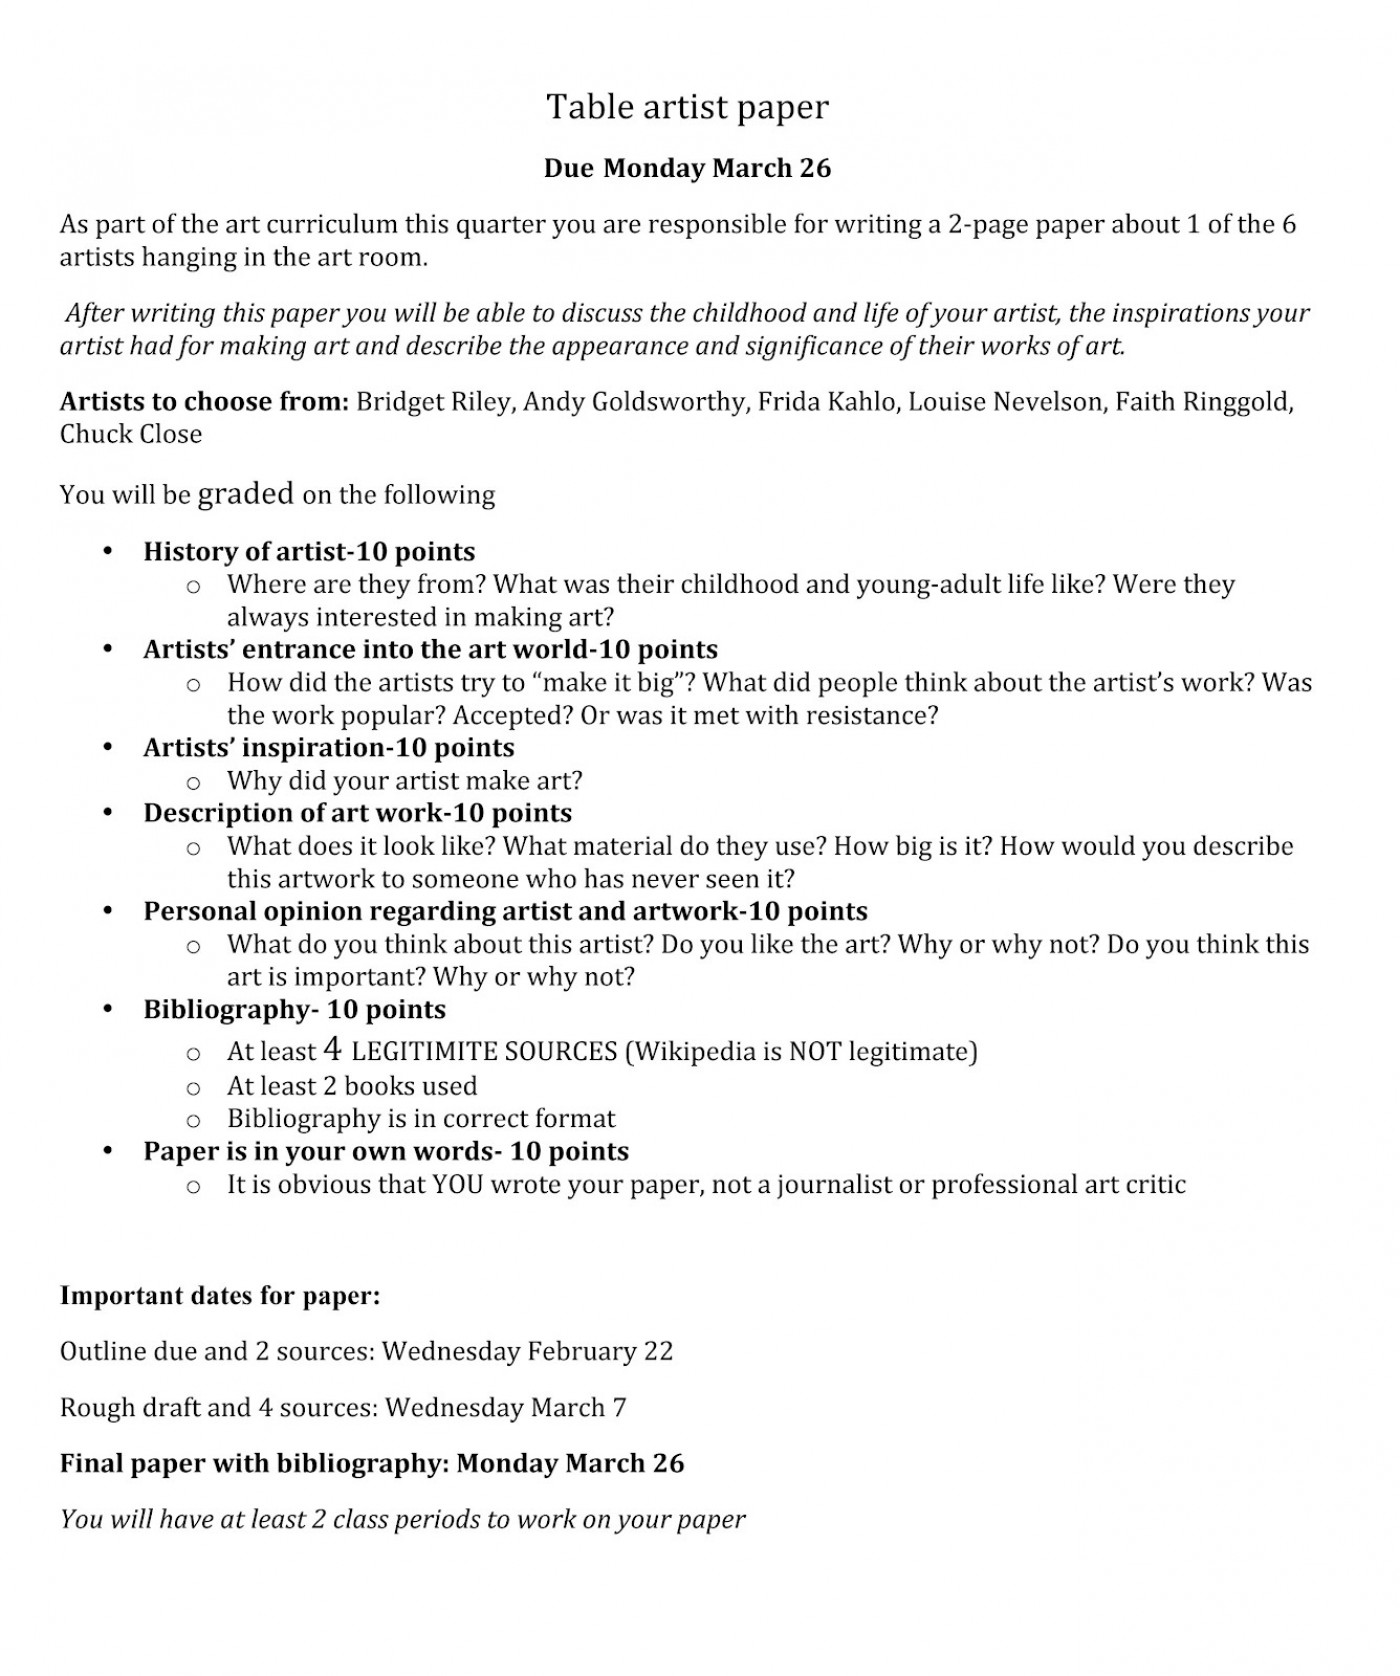 005 Tableartistpaper Argumentative Research Paper Topics Surprising History American 1400